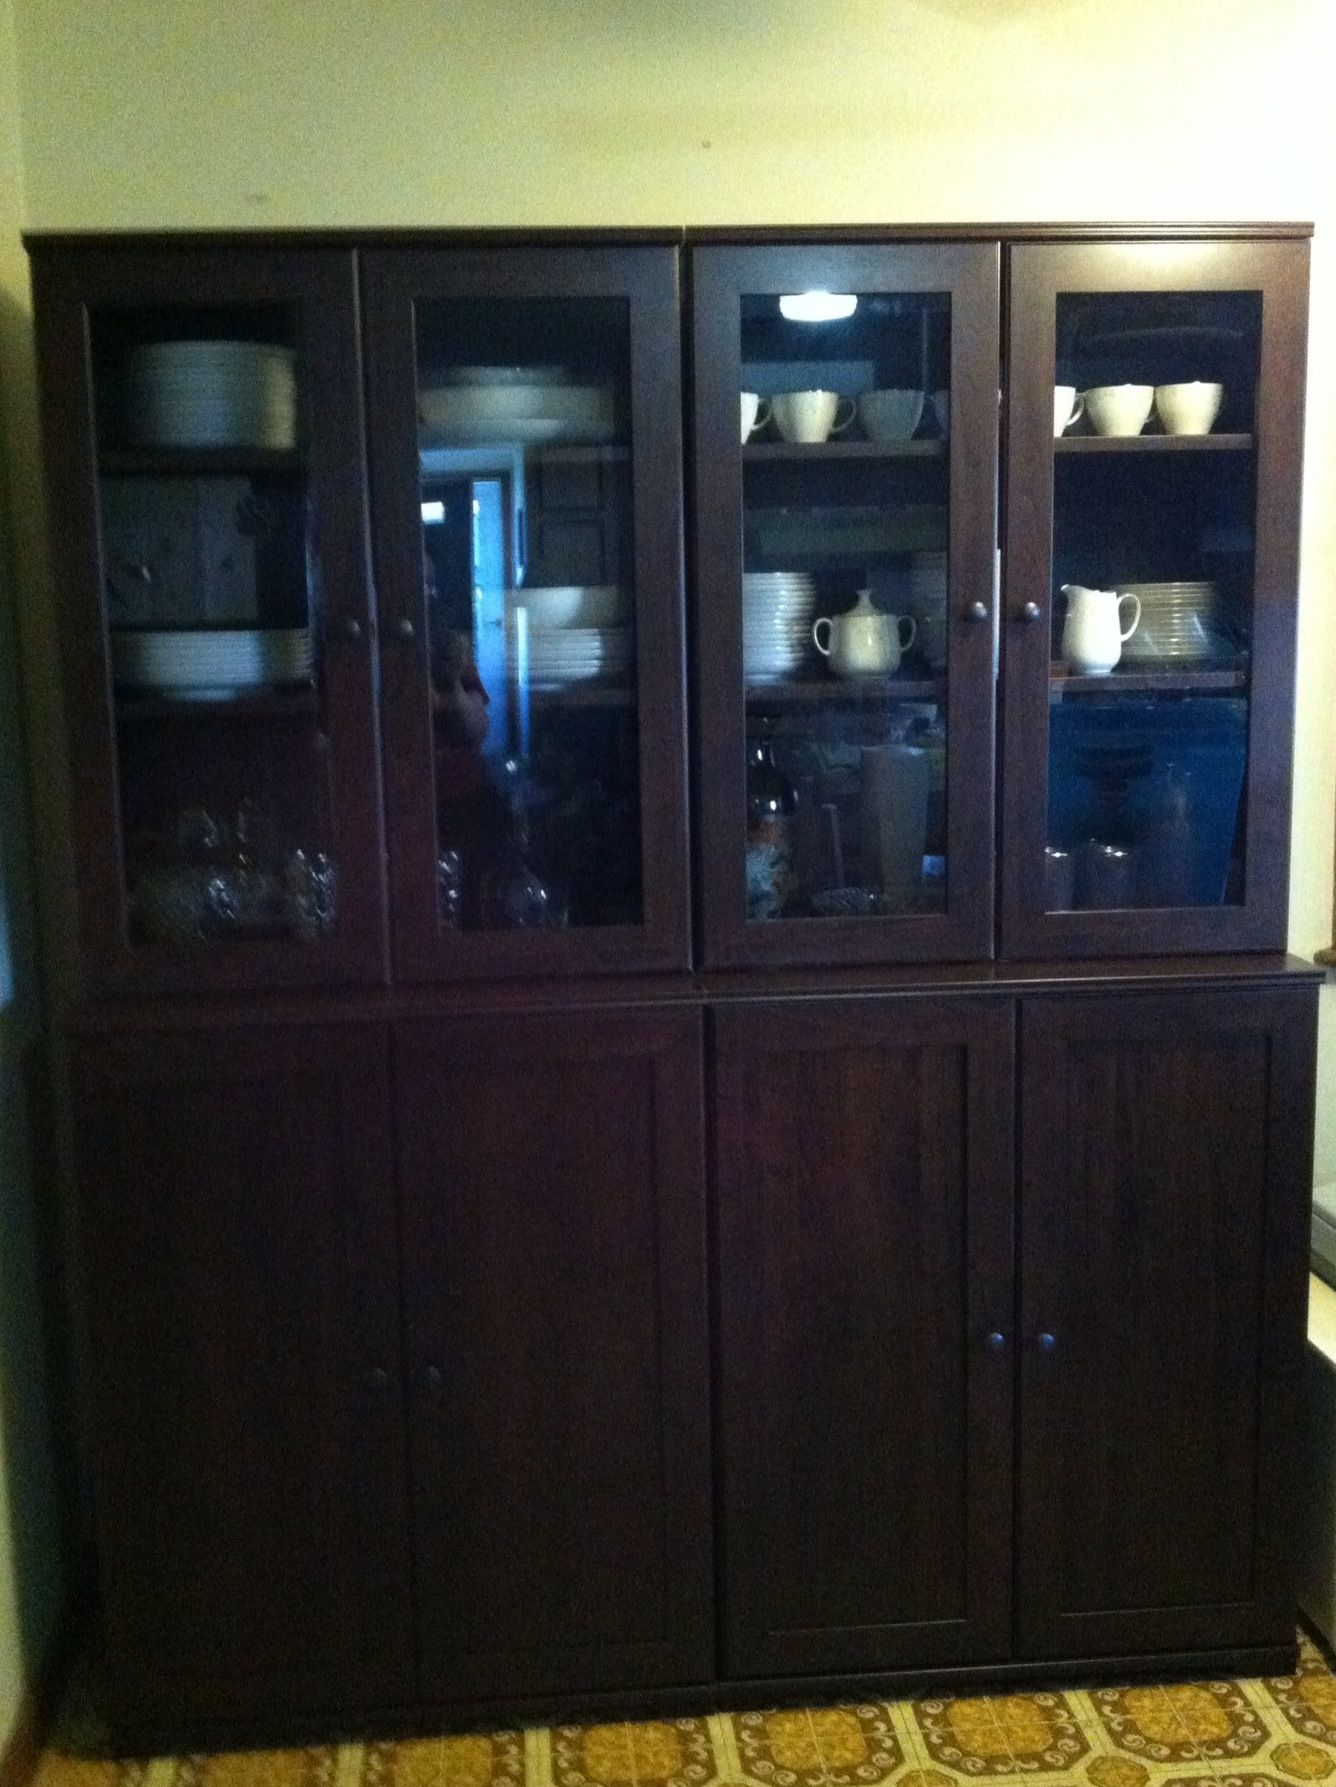 buy popular 664ab 6d851 First Ikea project complete! Tons of kitchen storage now ...